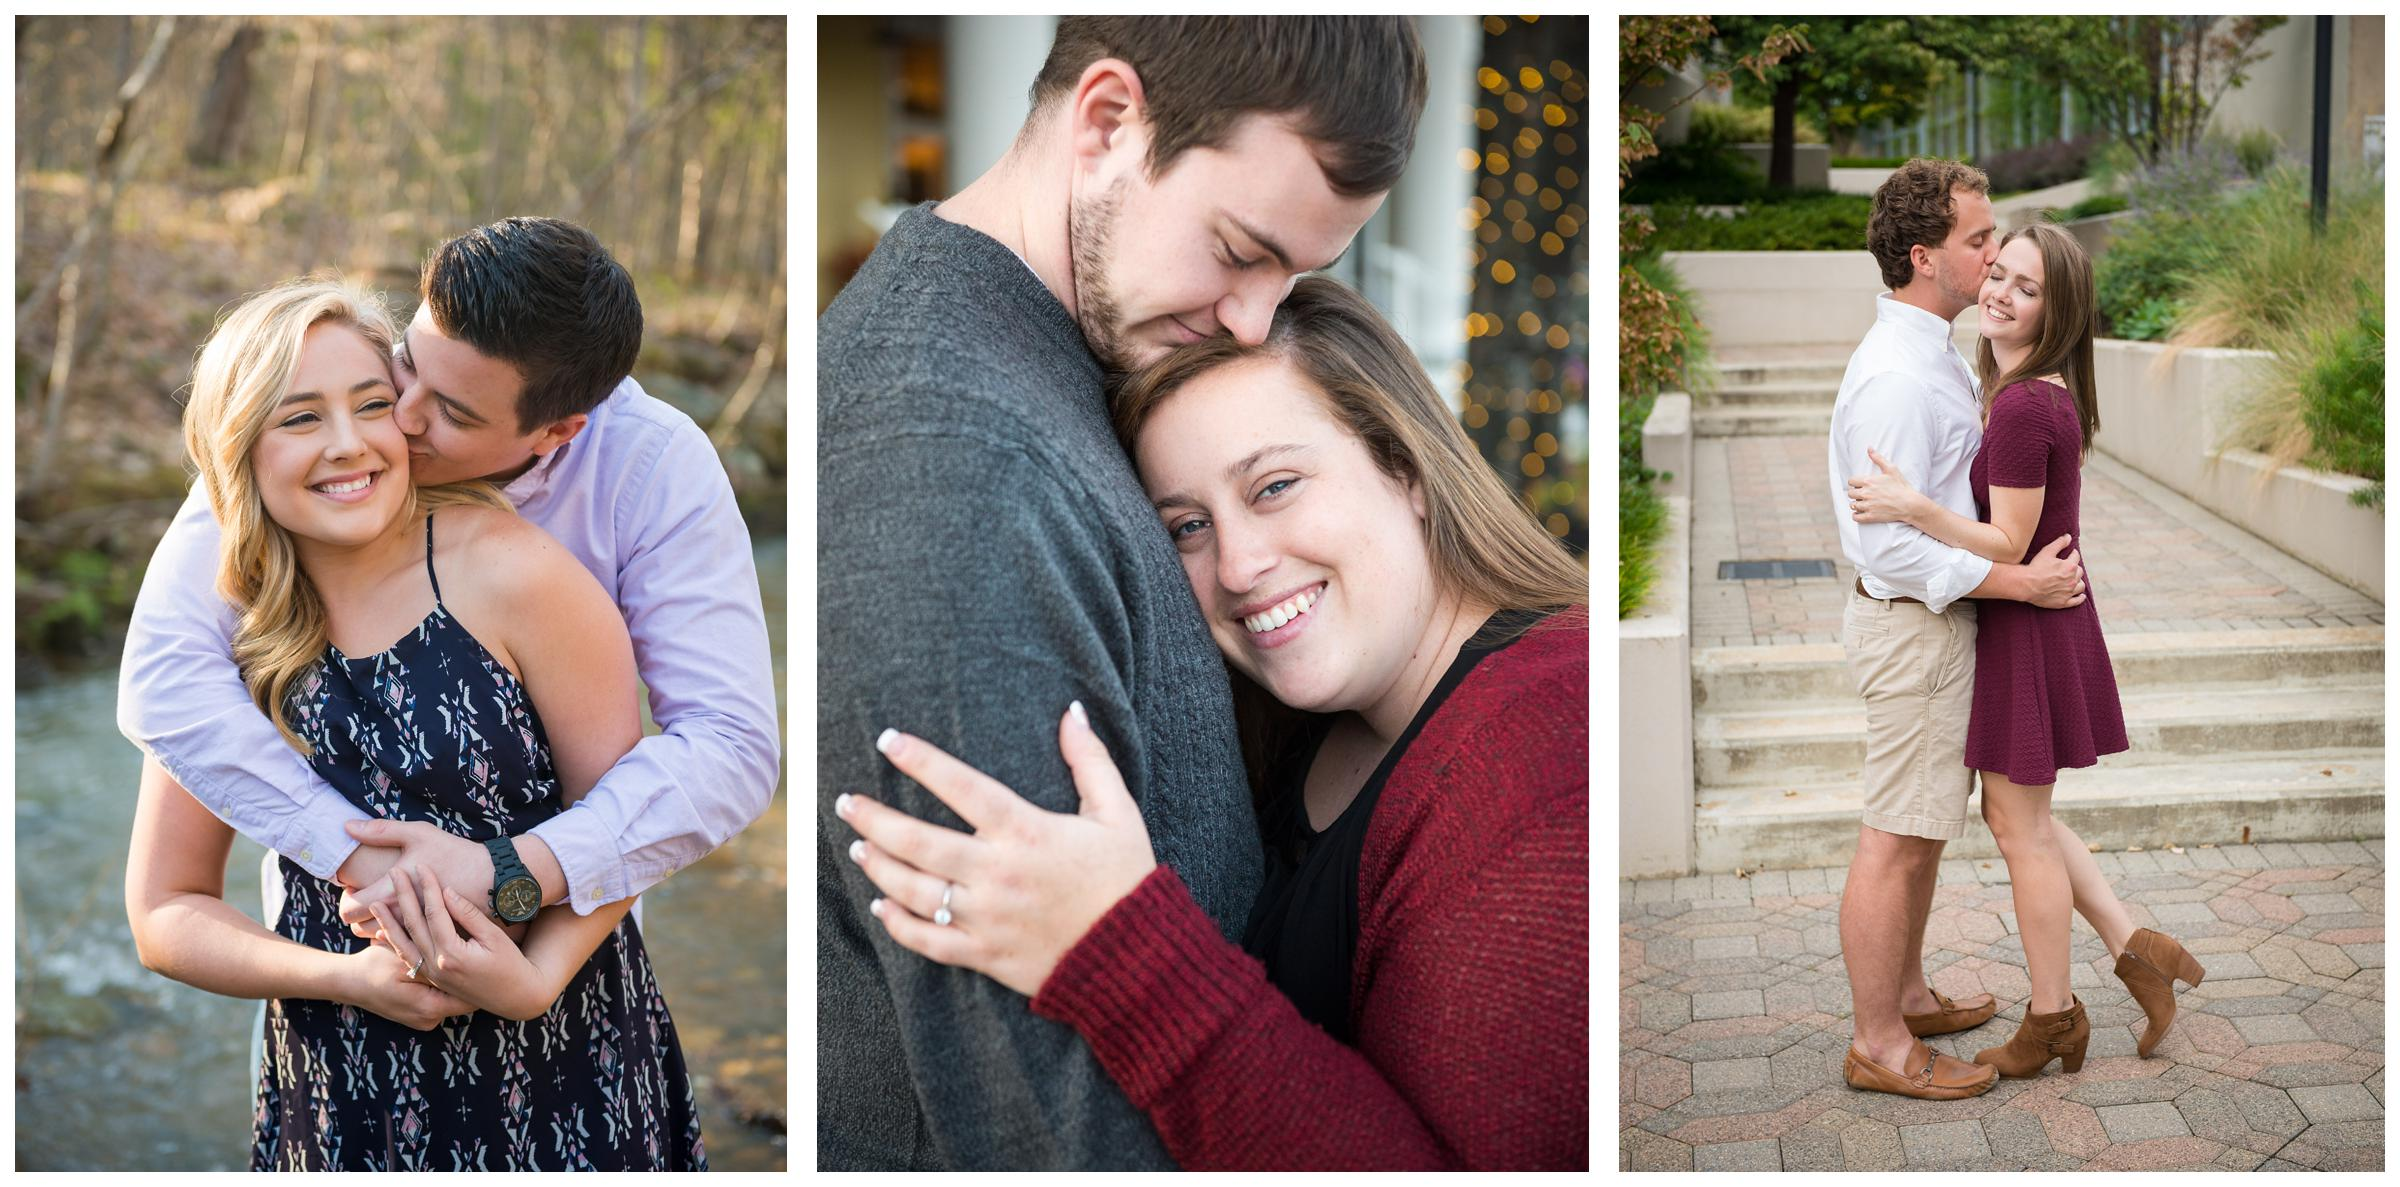 engaged couples embracing